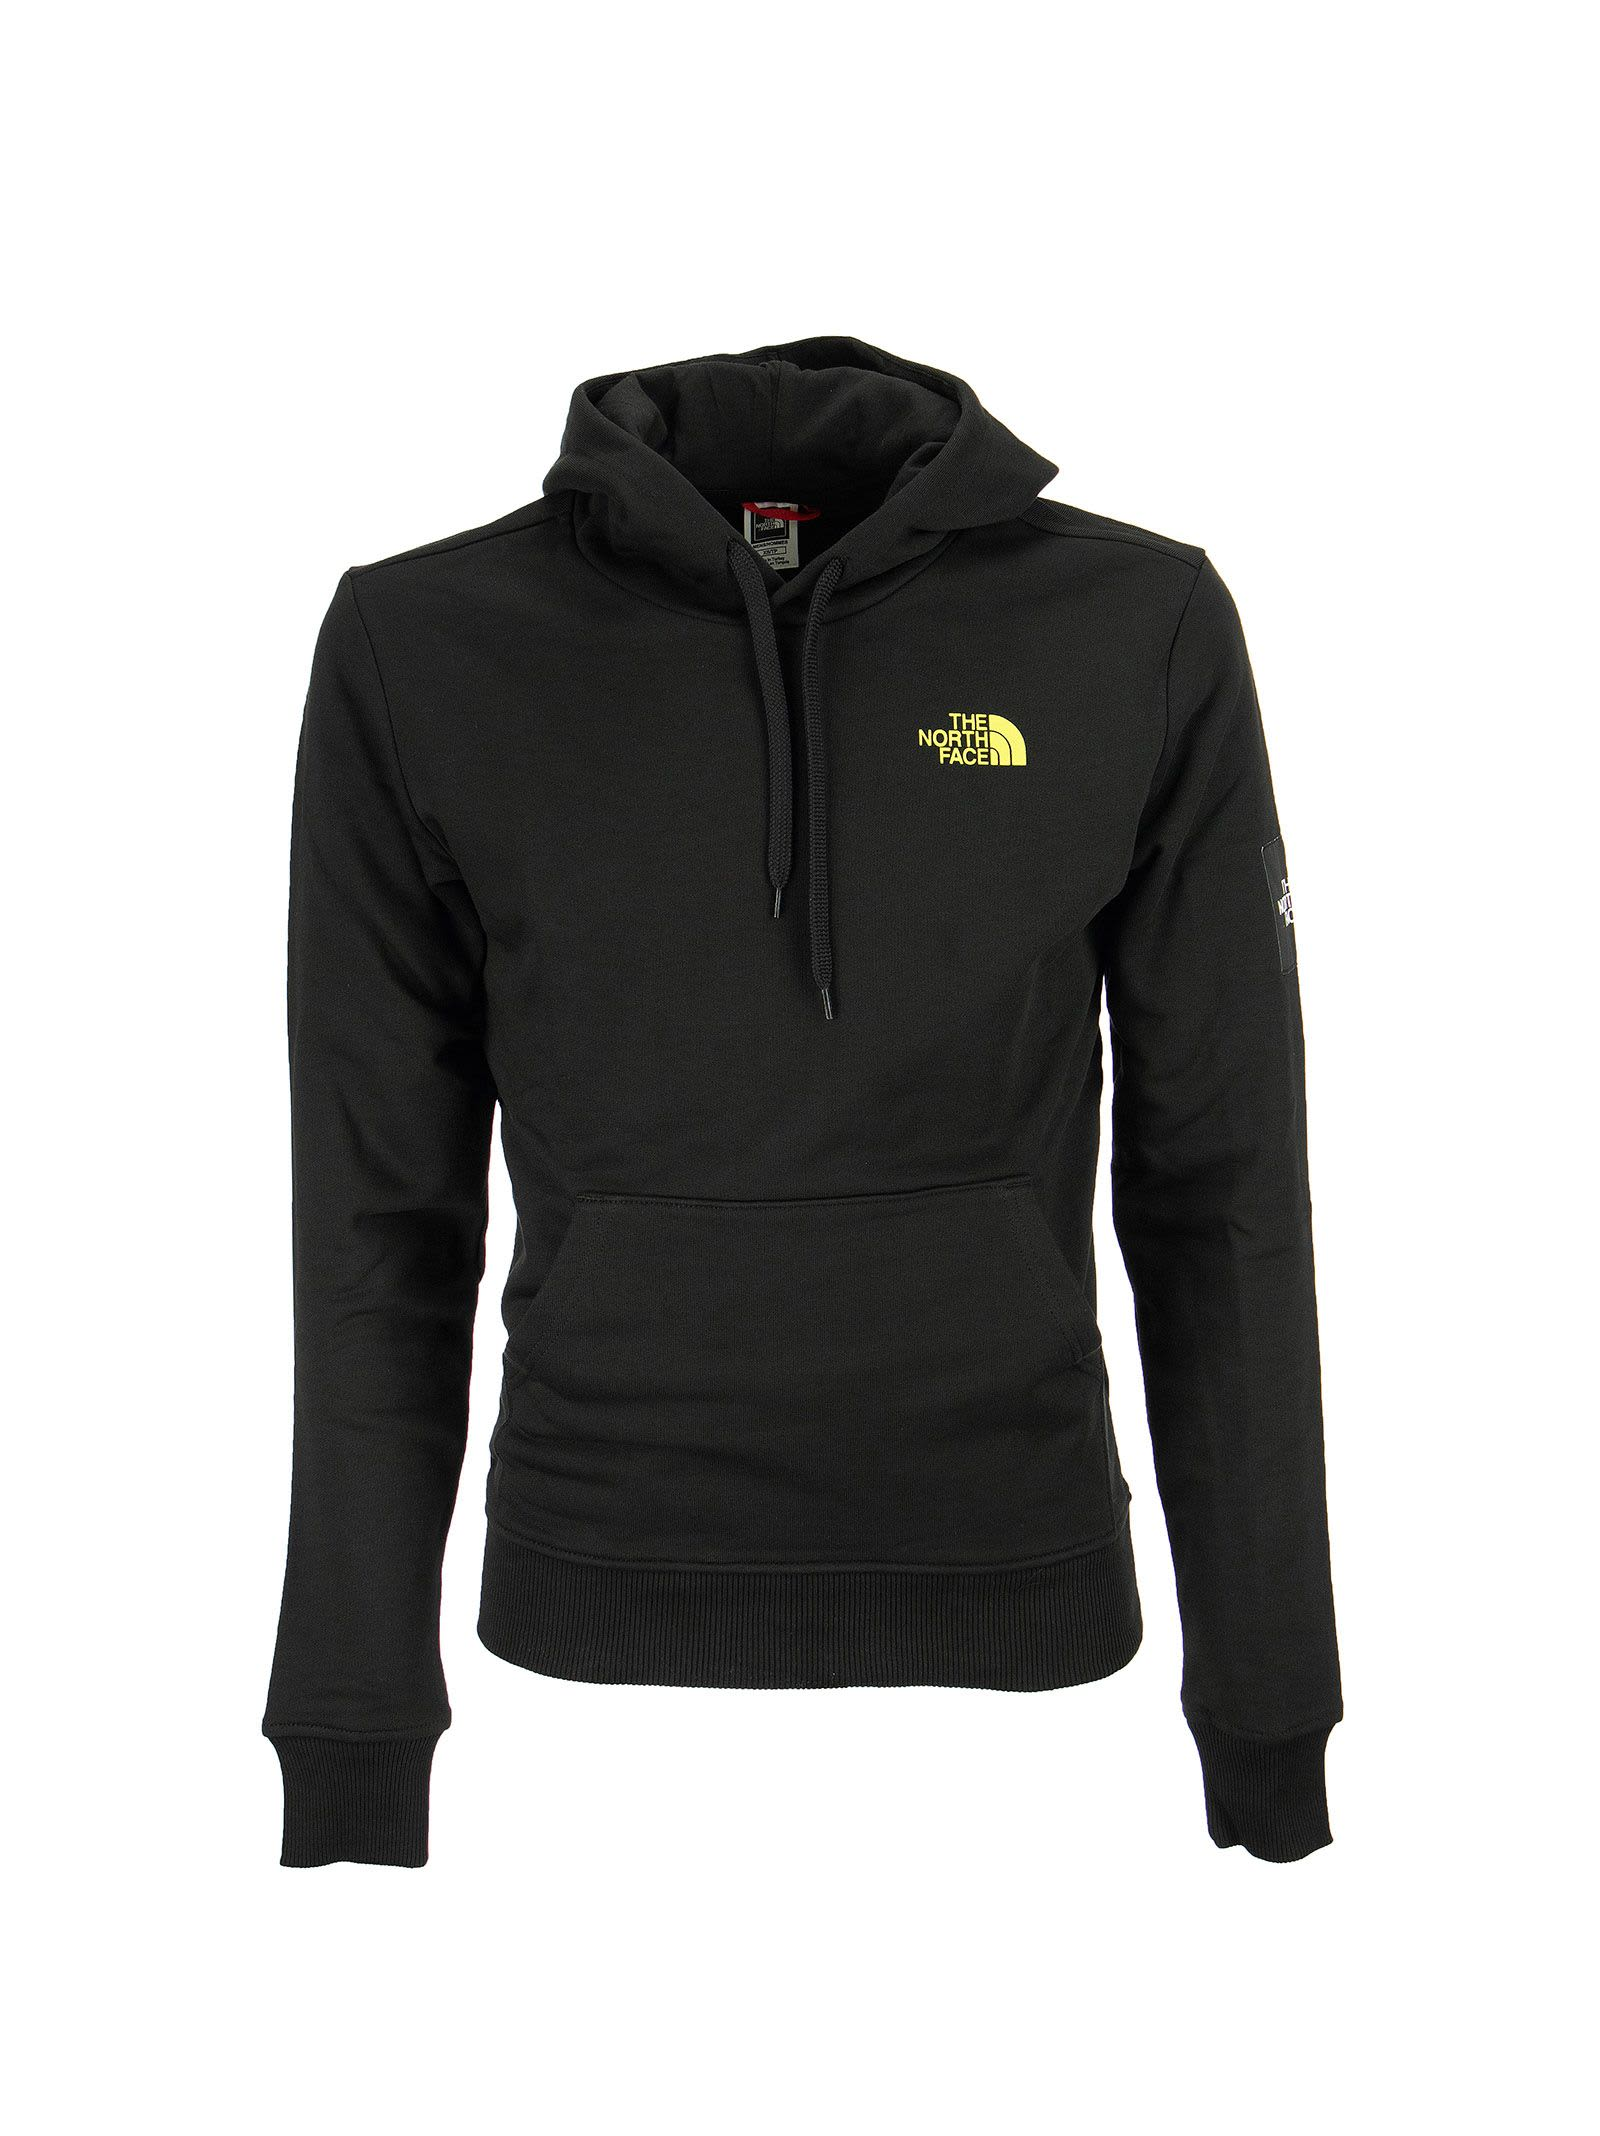 The North Face Cottons BLACK BOX MENS HOODED SWEATSHIRT